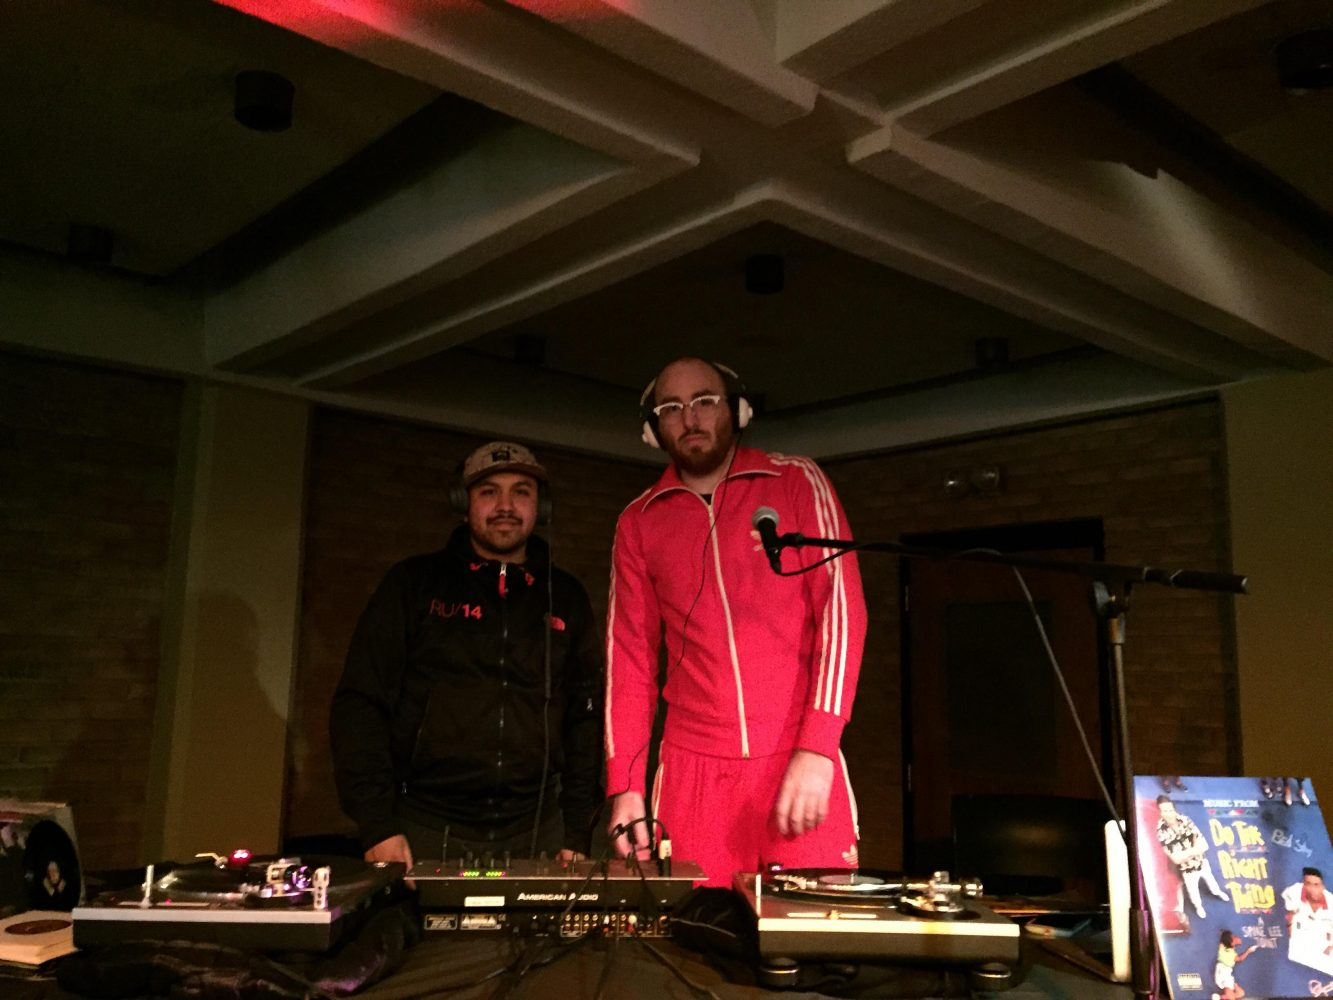 DJ MA and DJ Maxx perform in the Fish House; Photo by Daniel Hickey.